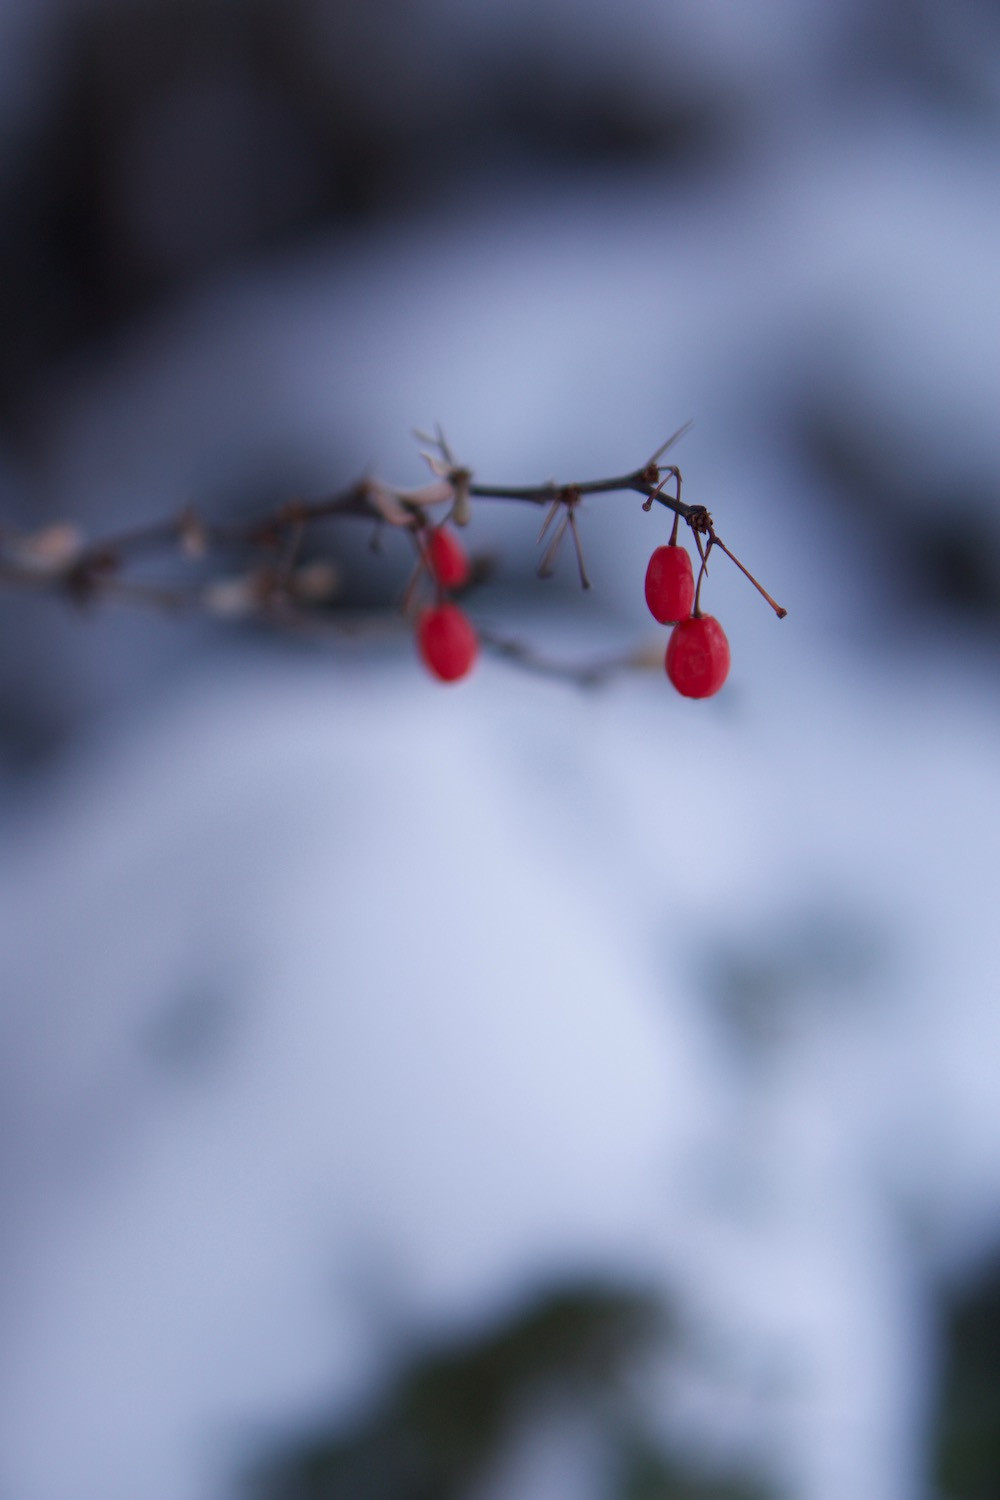 Red berries on cold winter's day